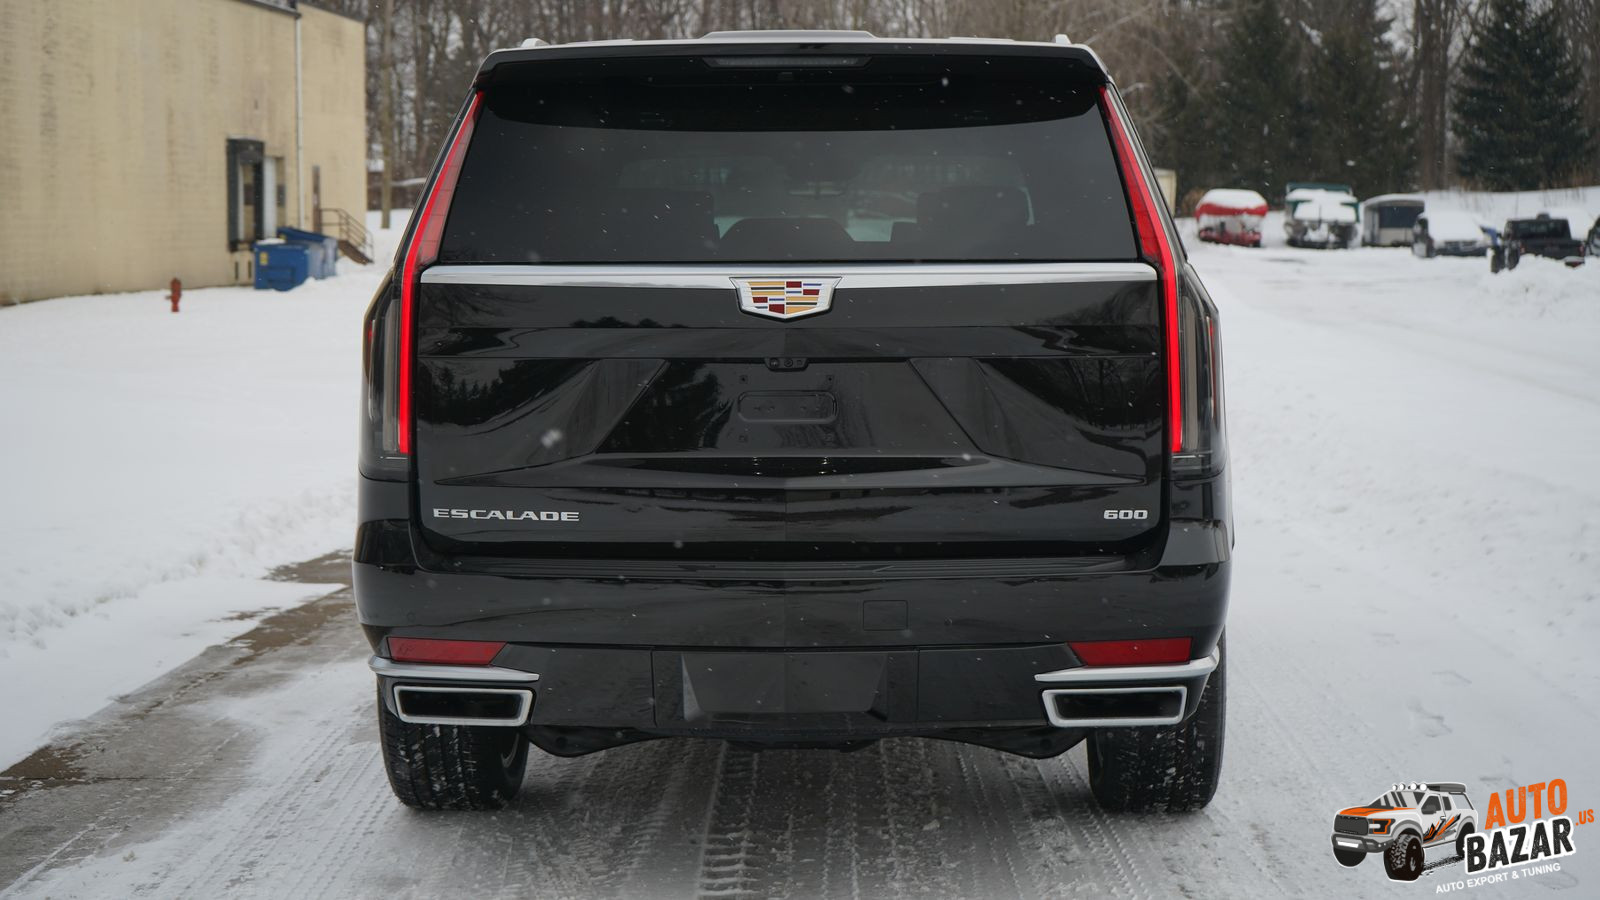 /storage/inventories/1103/2021 Cadillac Escalade 1103 (6).JPG